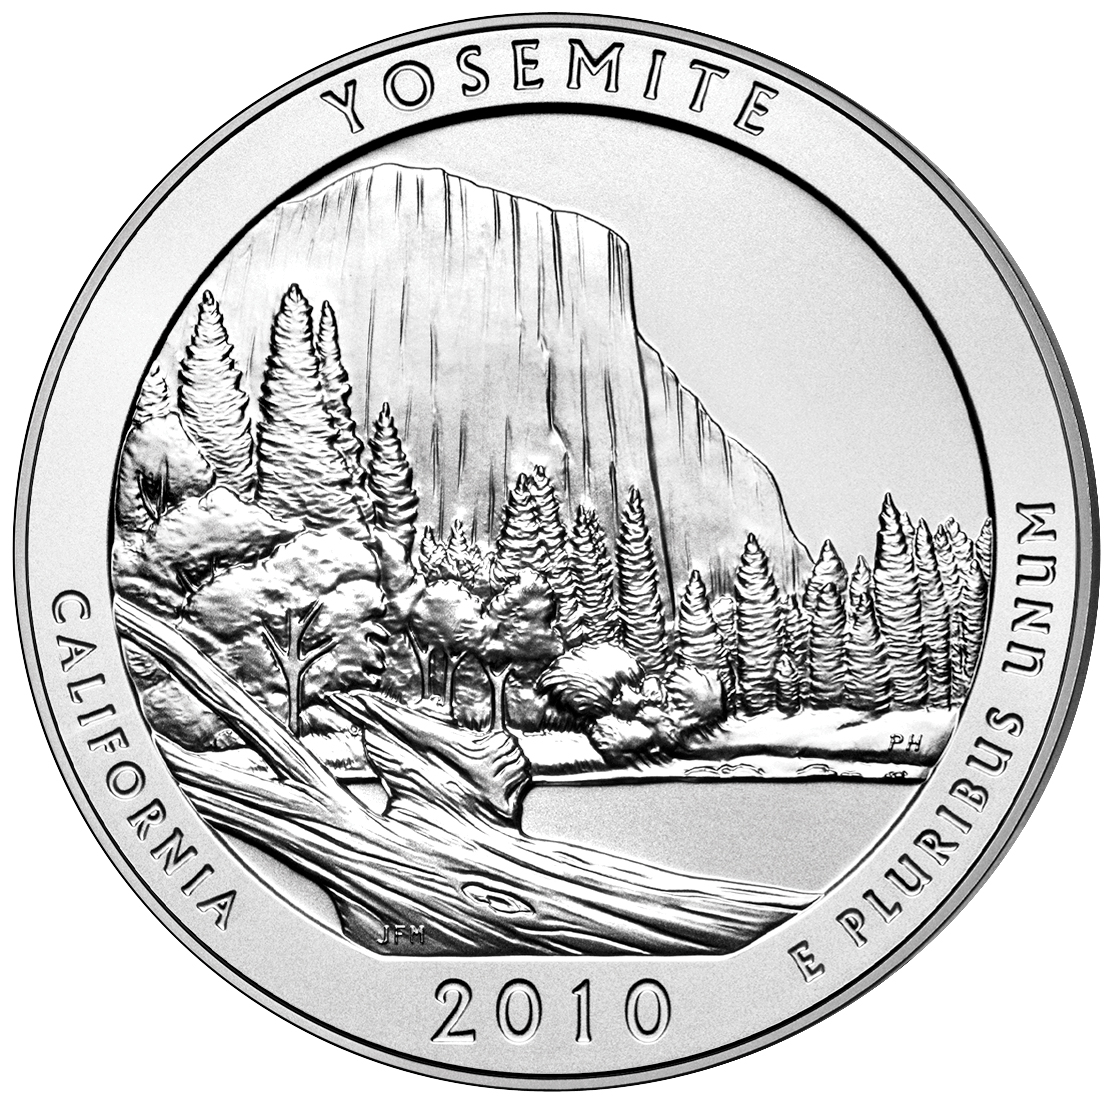 2010 Yosemite 5 Oz Silver Uncirculated Coin (US Mint image)